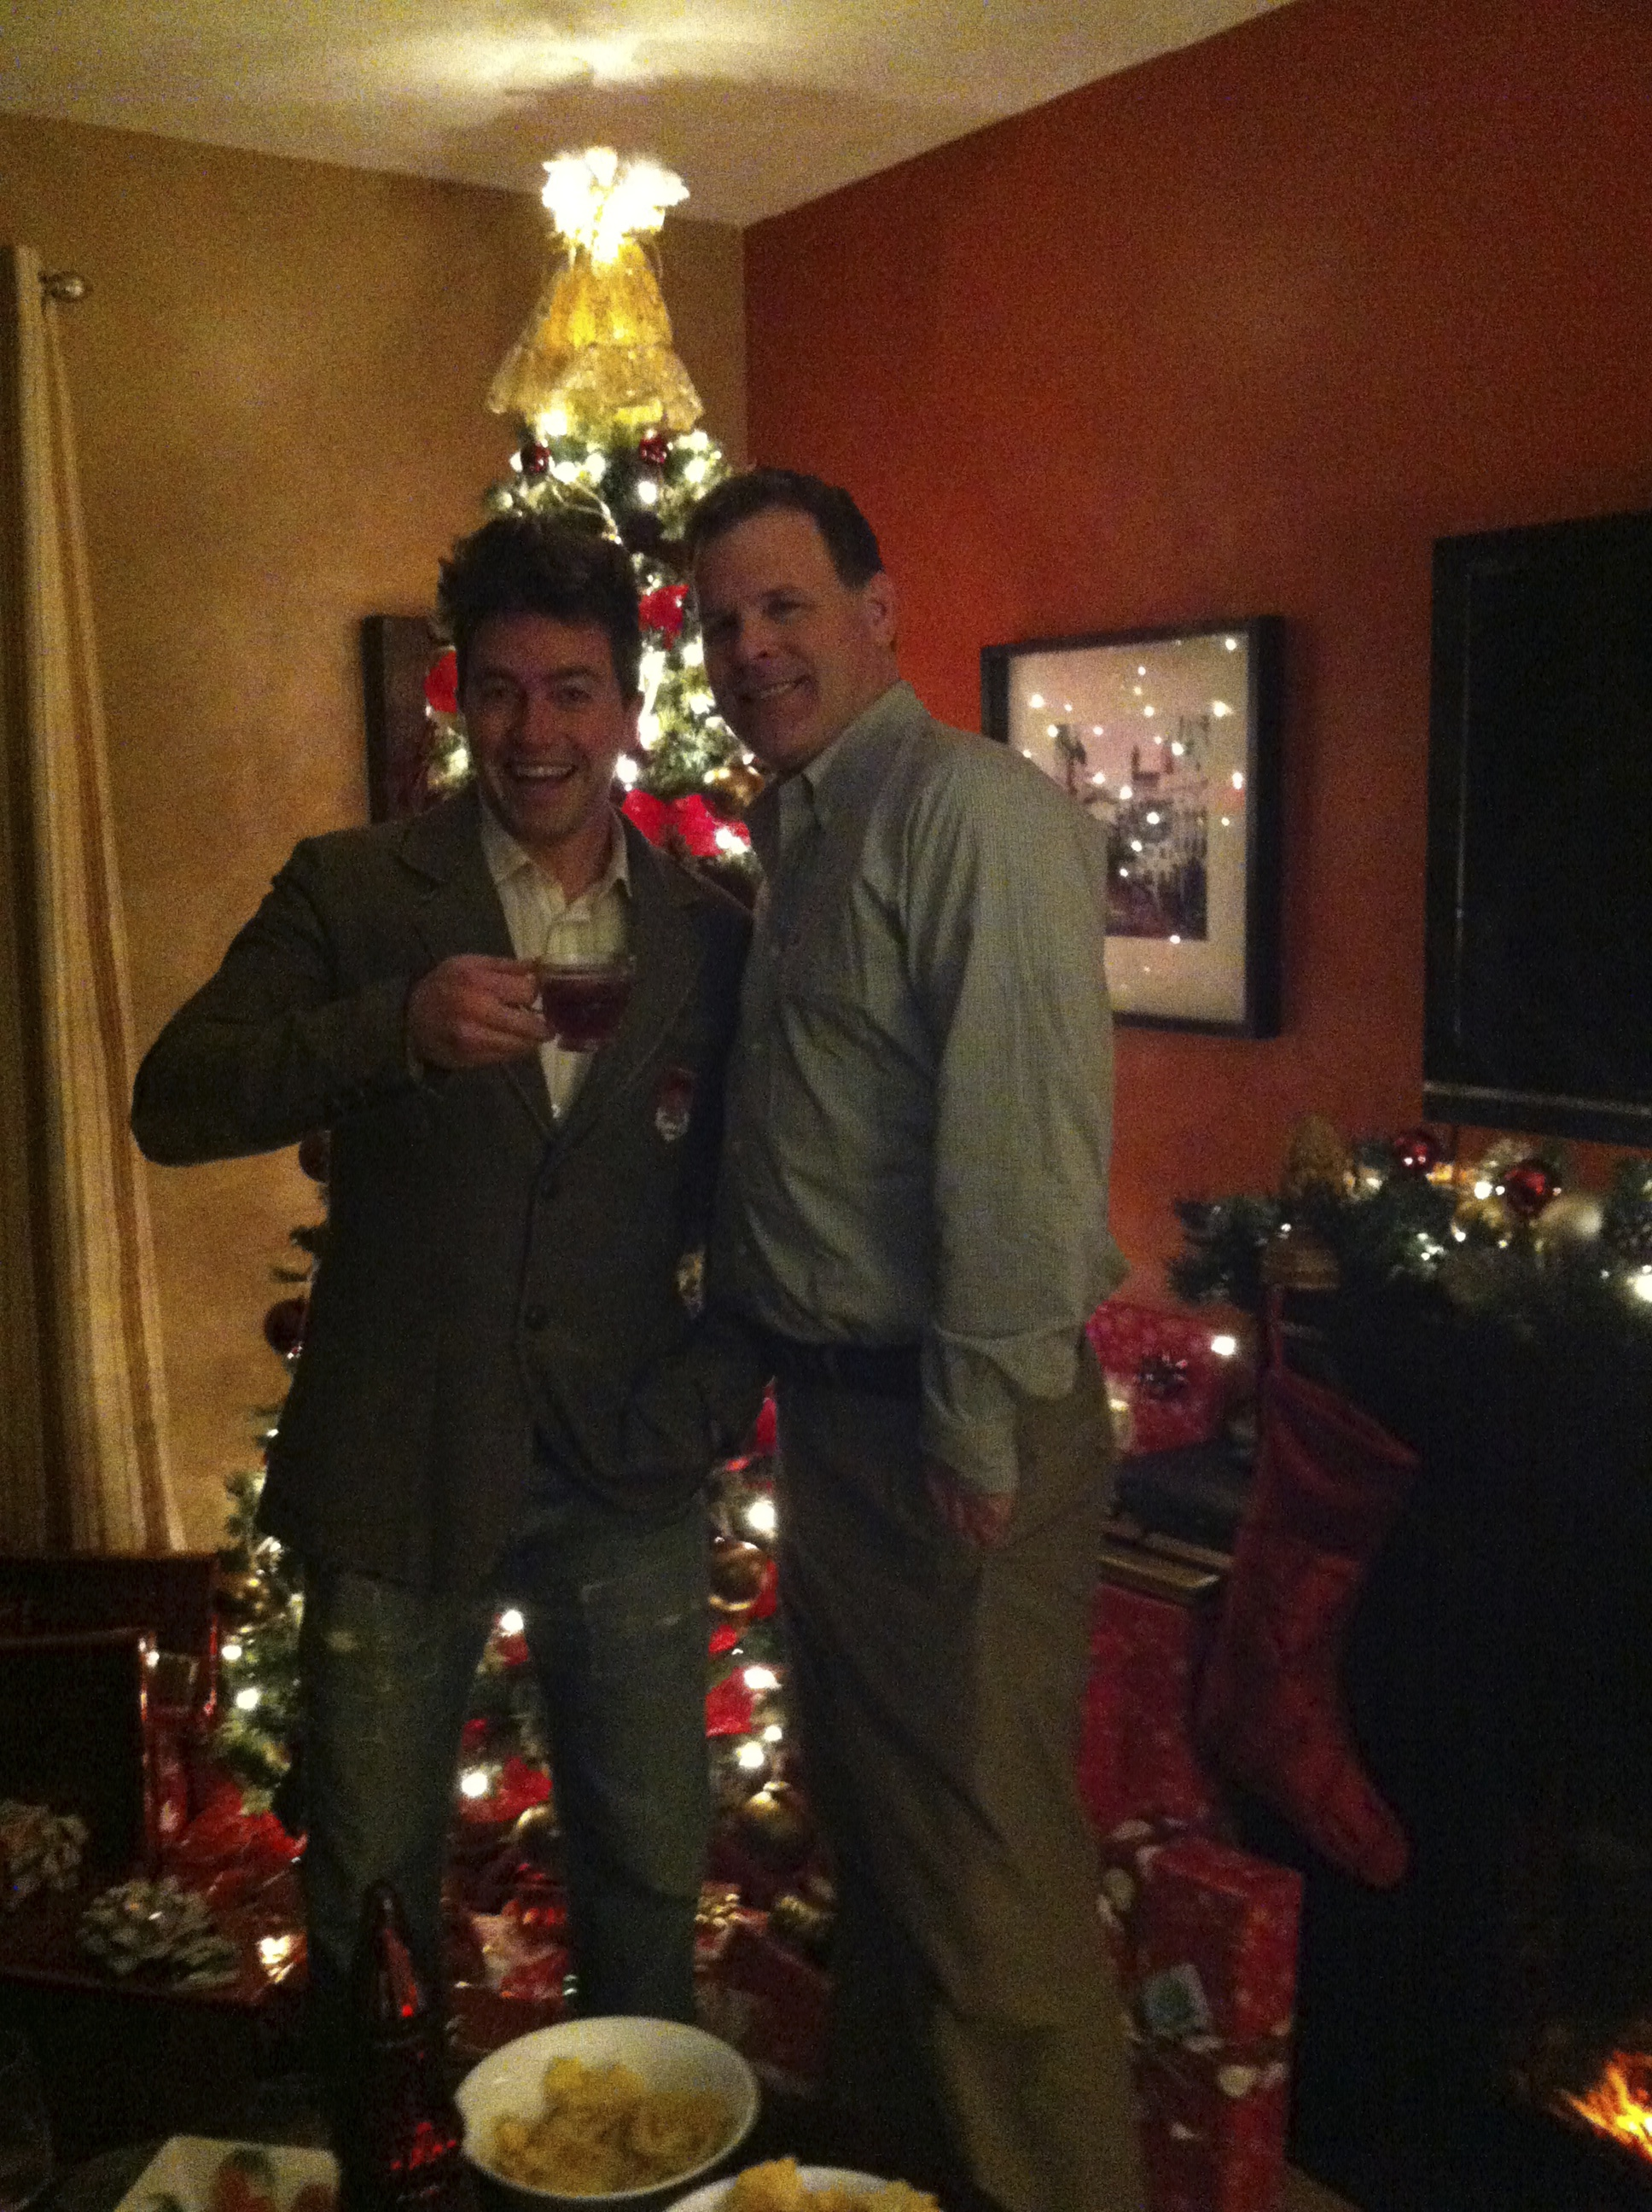 Me and Minister of Foreign Affairs John Baird enjoying the Yuletide…whatever the fuck that means